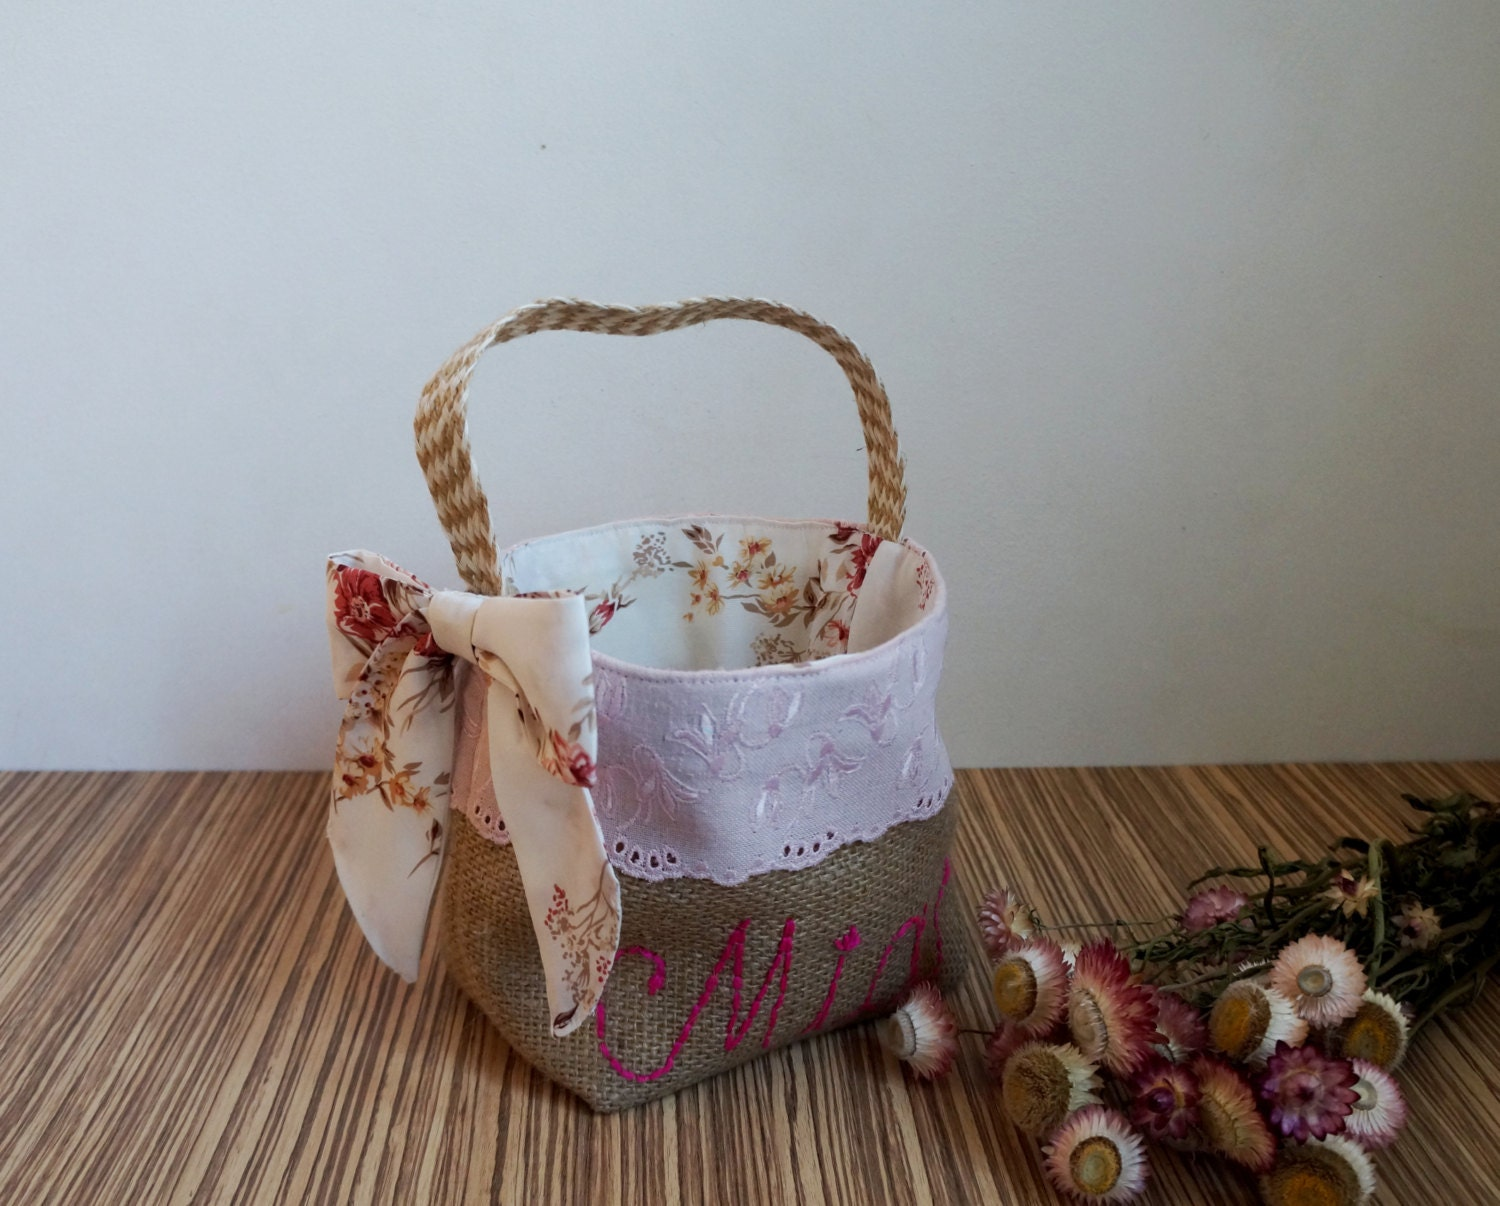 Flower Girl Baskets Burlap : Flower girl basket burlap pale pink eyelet embroidery